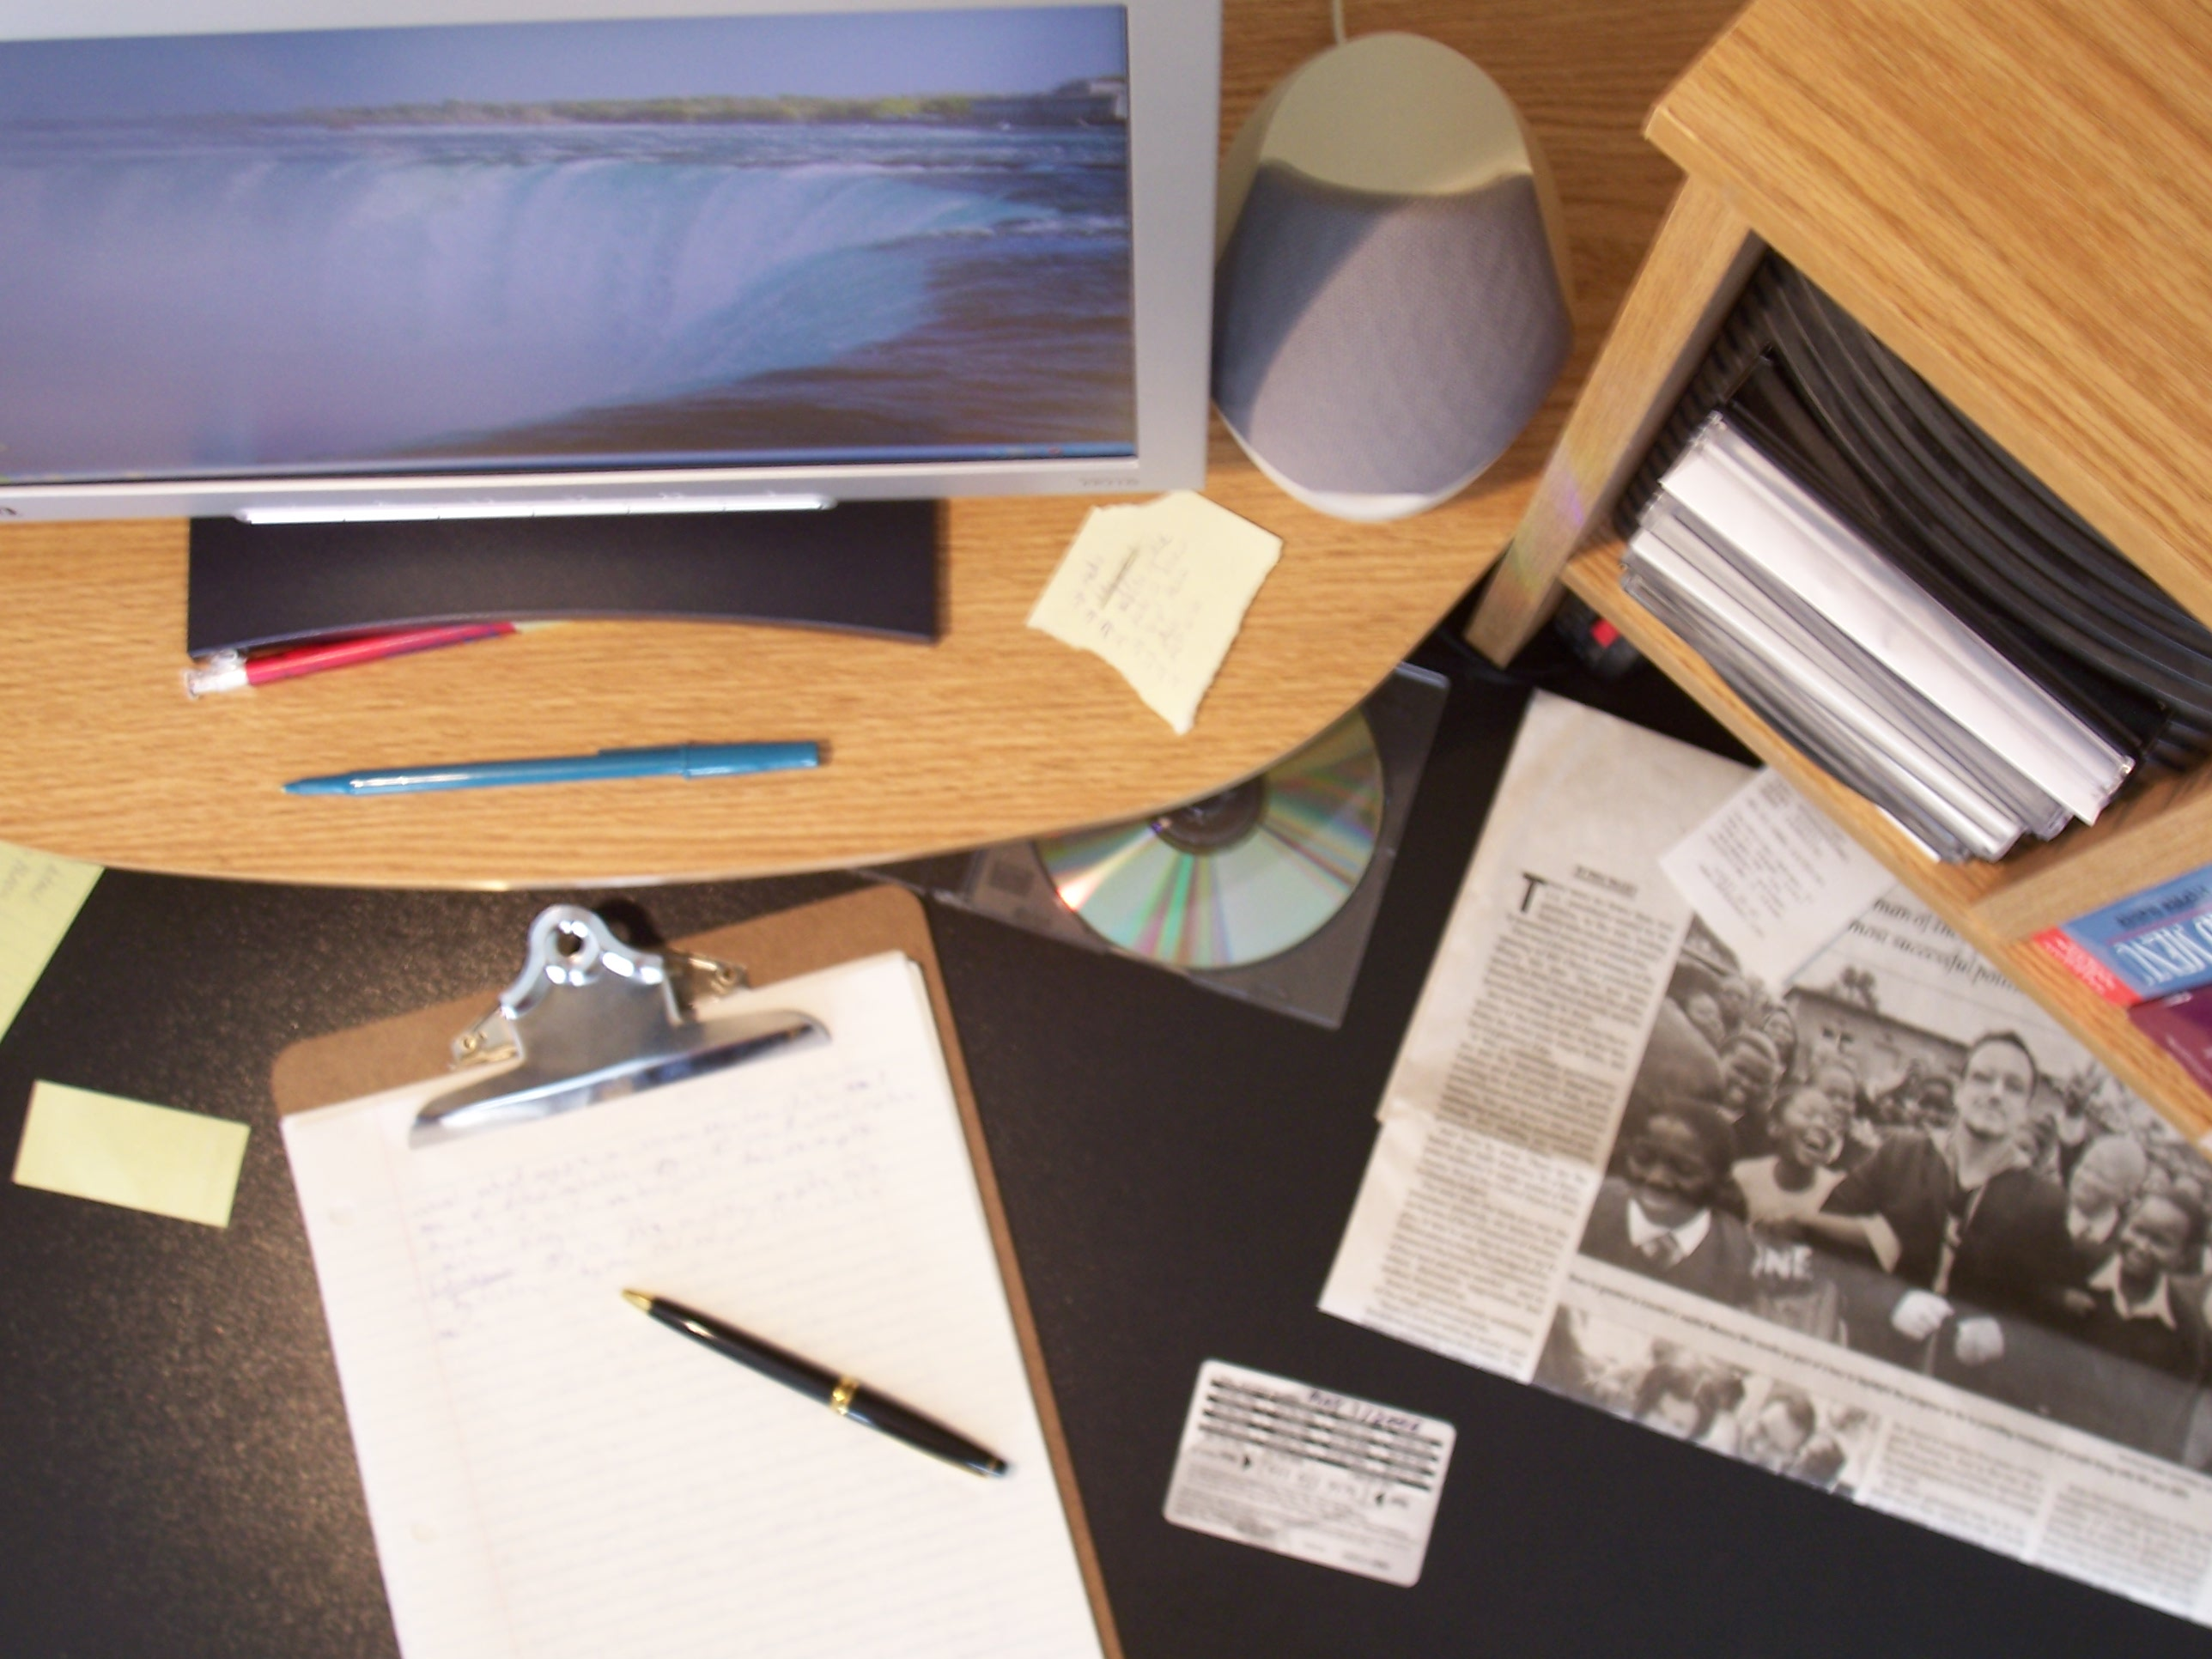 office working table. Check My Emails Office Working Table